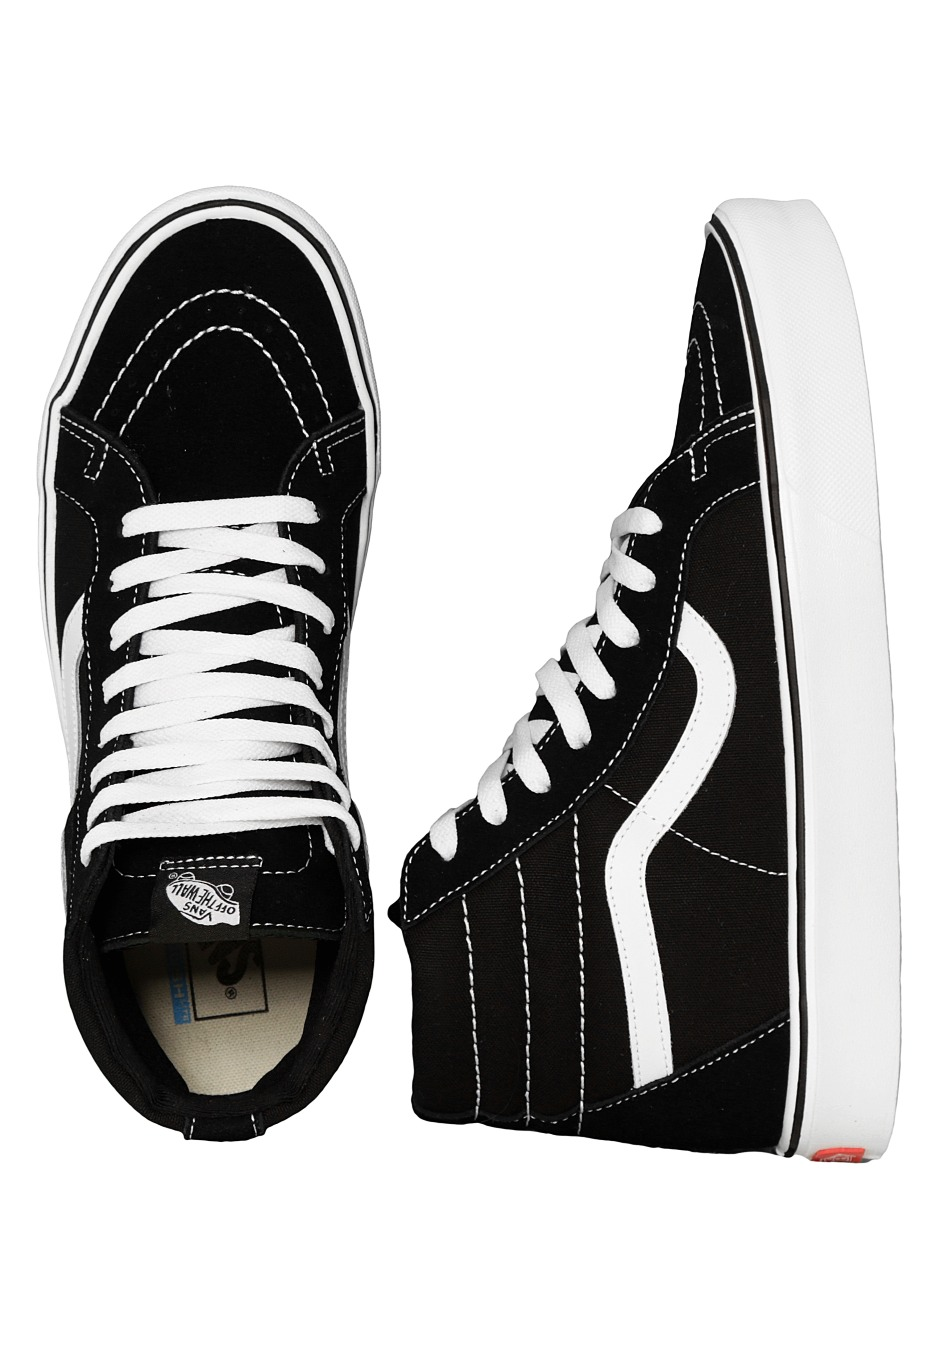 15355961a25e87 Vans - Sk8-Hi Lite + Suede Canvas Black White - Shoes - Impericon.com UK